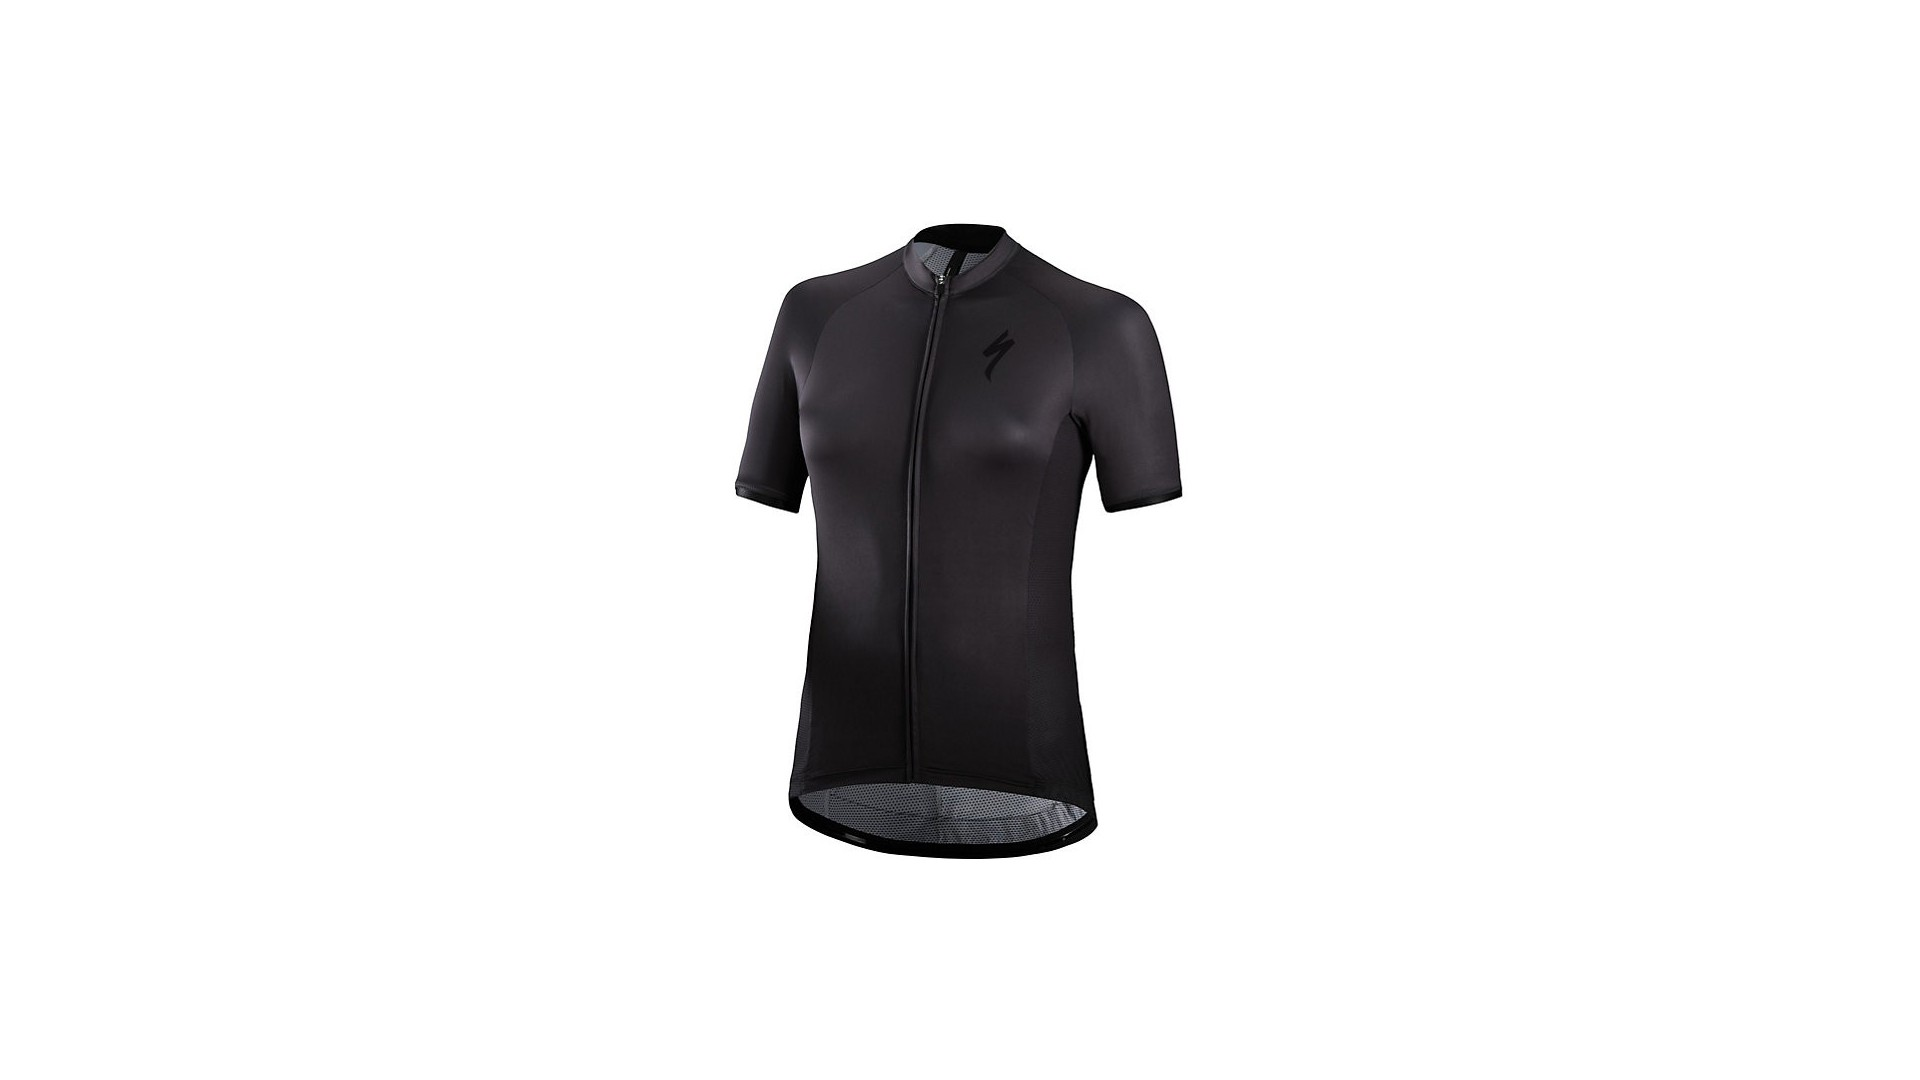 SL Pro Maillot Specialized Mujer Negro 1 IBKBike.es